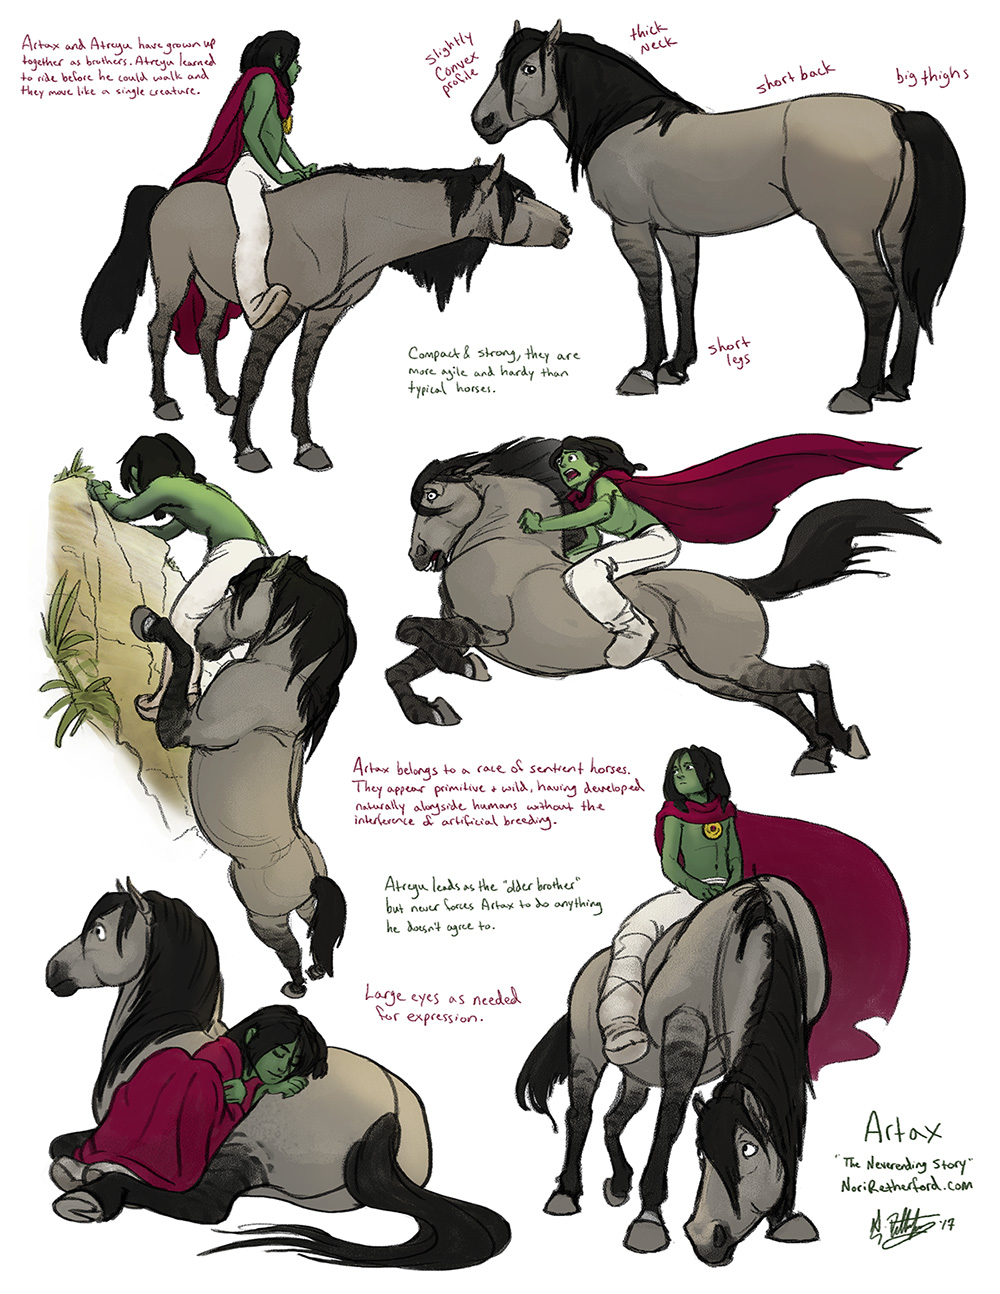 This was my first pass at finding designs for Atreyu and Artax to get on with storyboarding. Not much stylization going on here - Atreyu's appearance is almost straight from the book and Artax is just a horse. I tried to make them look related.